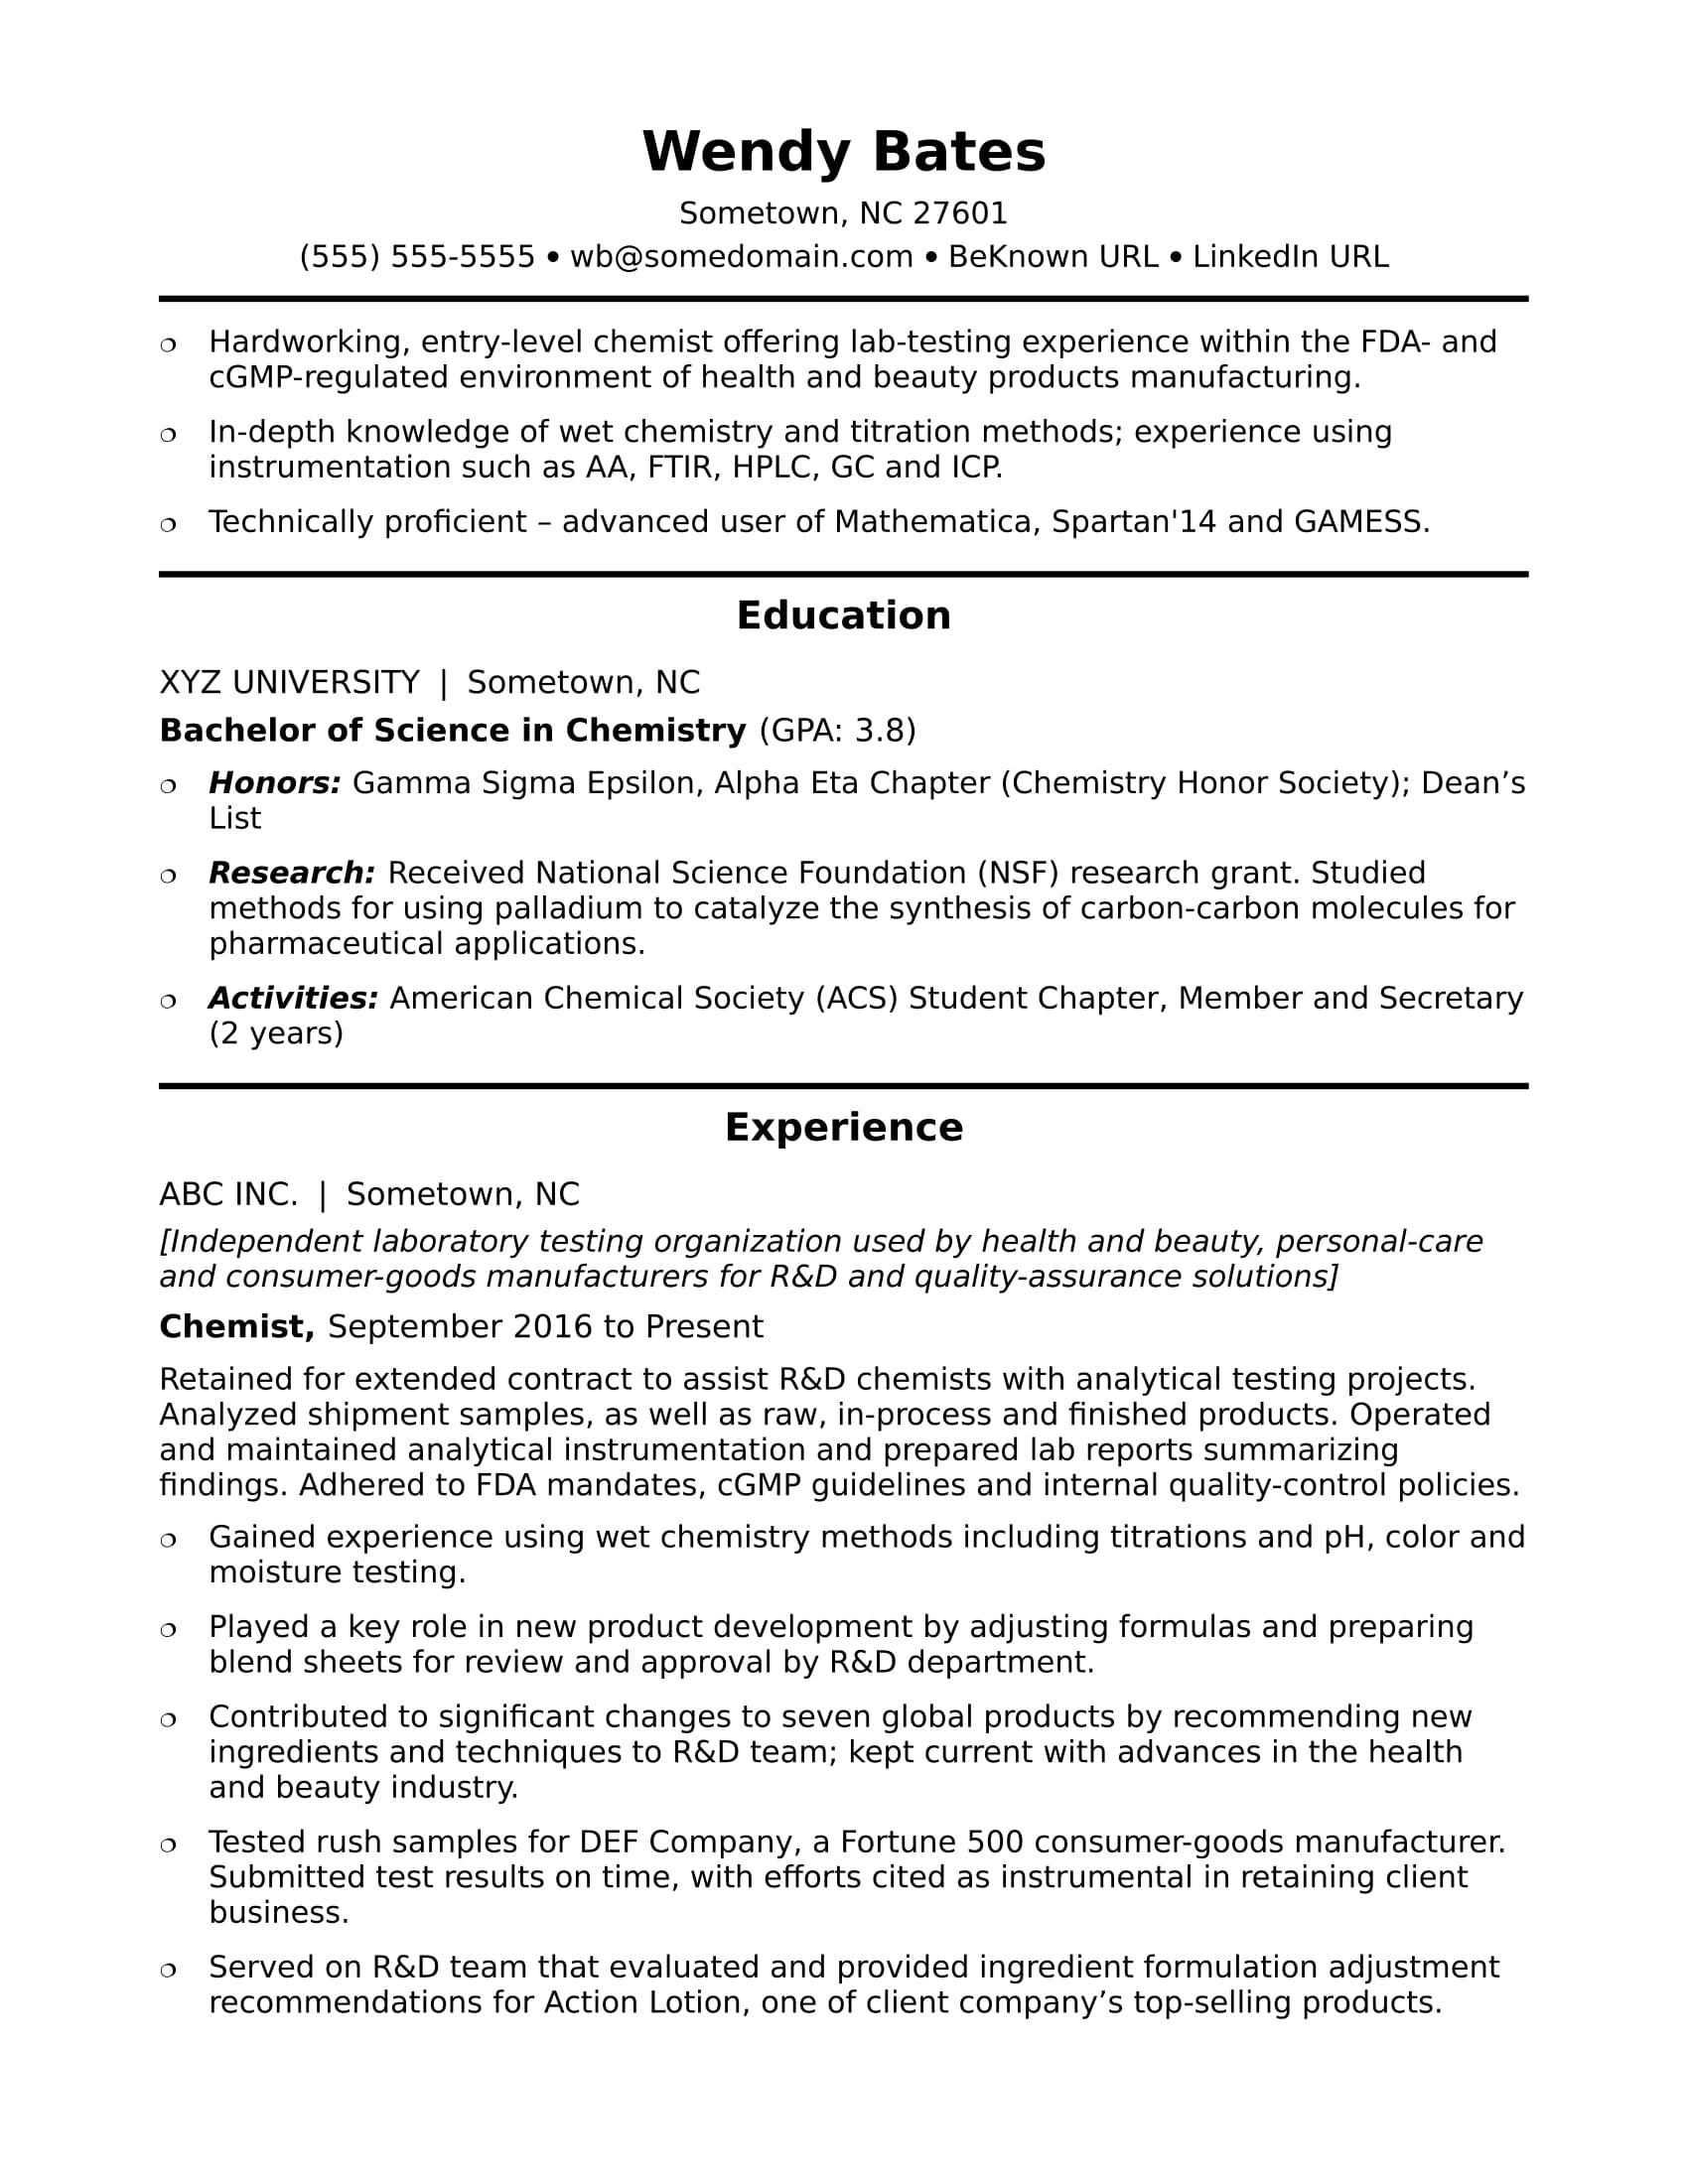 Sample Resume For An Entry Level Chemist  Analytical Chemist Resume